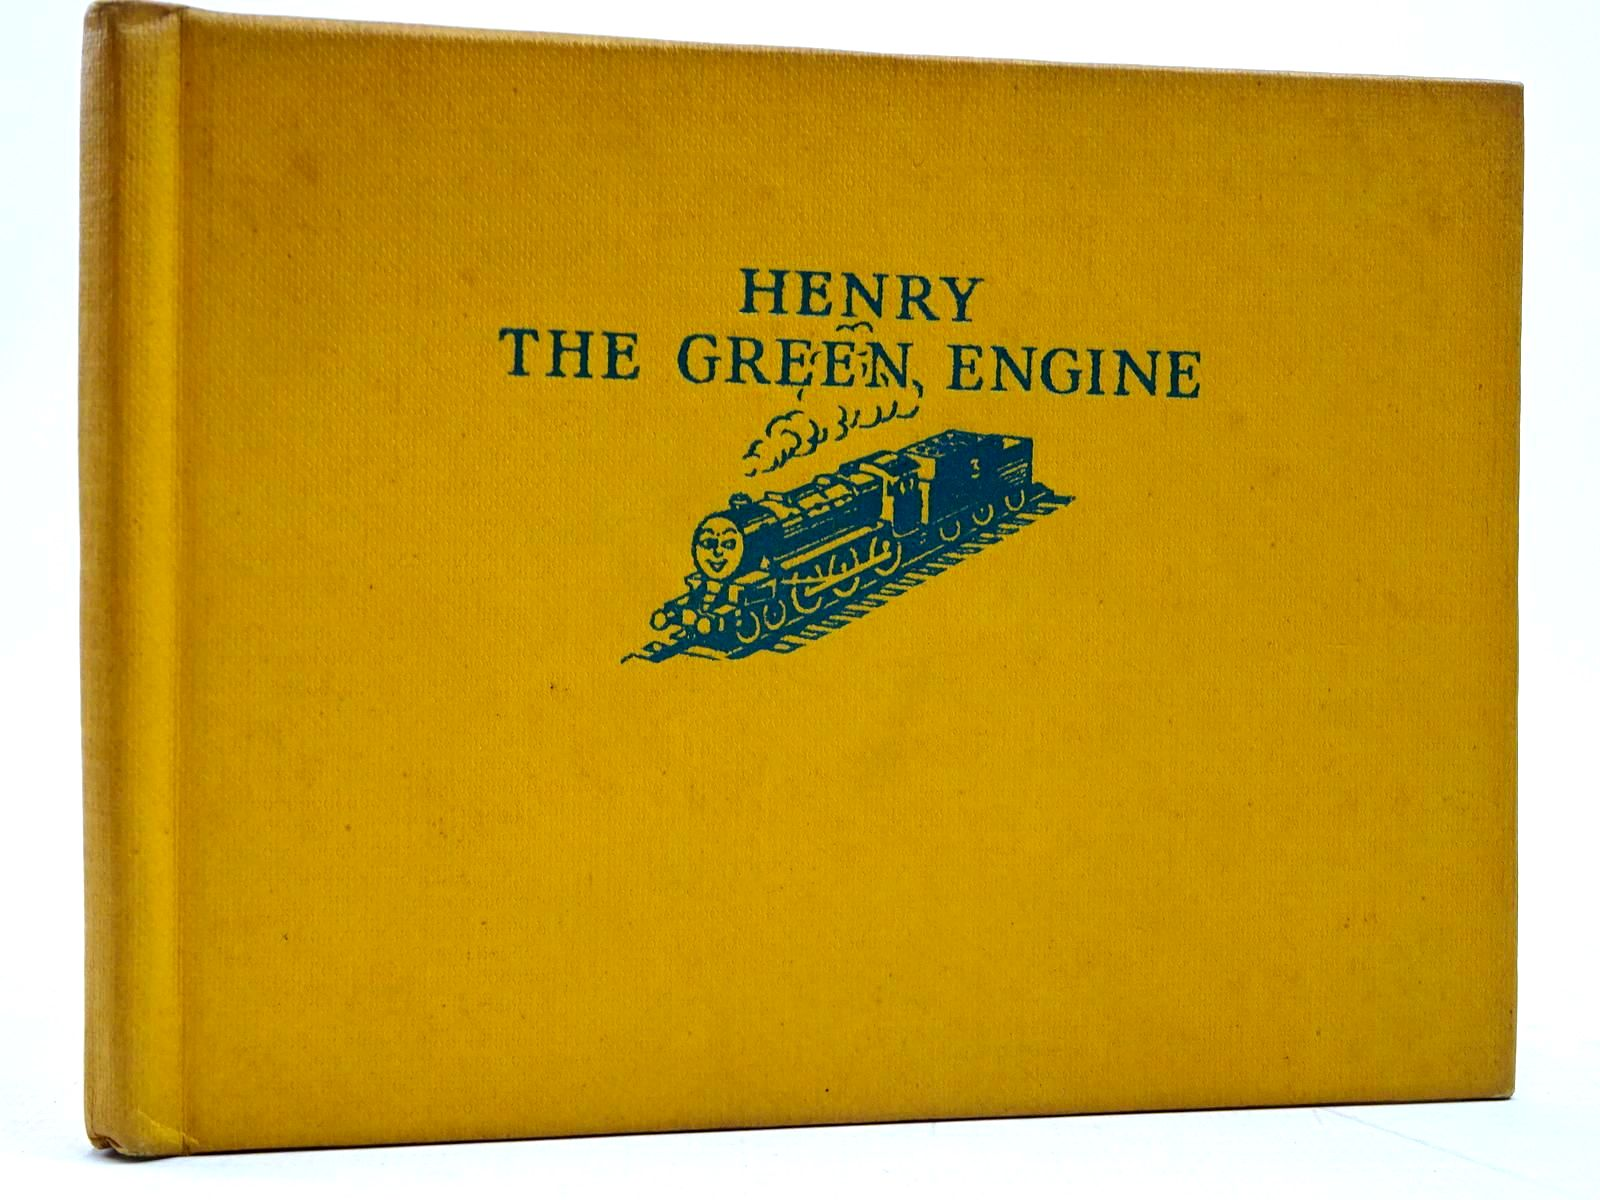 Photo of HENRY THE GREEN ENGINE written by Awdry, Rev. W. illustrated by Dalby, C. Reginald published by Edmund Ward (STOCK CODE: 2131106)  for sale by Stella & Rose's Books